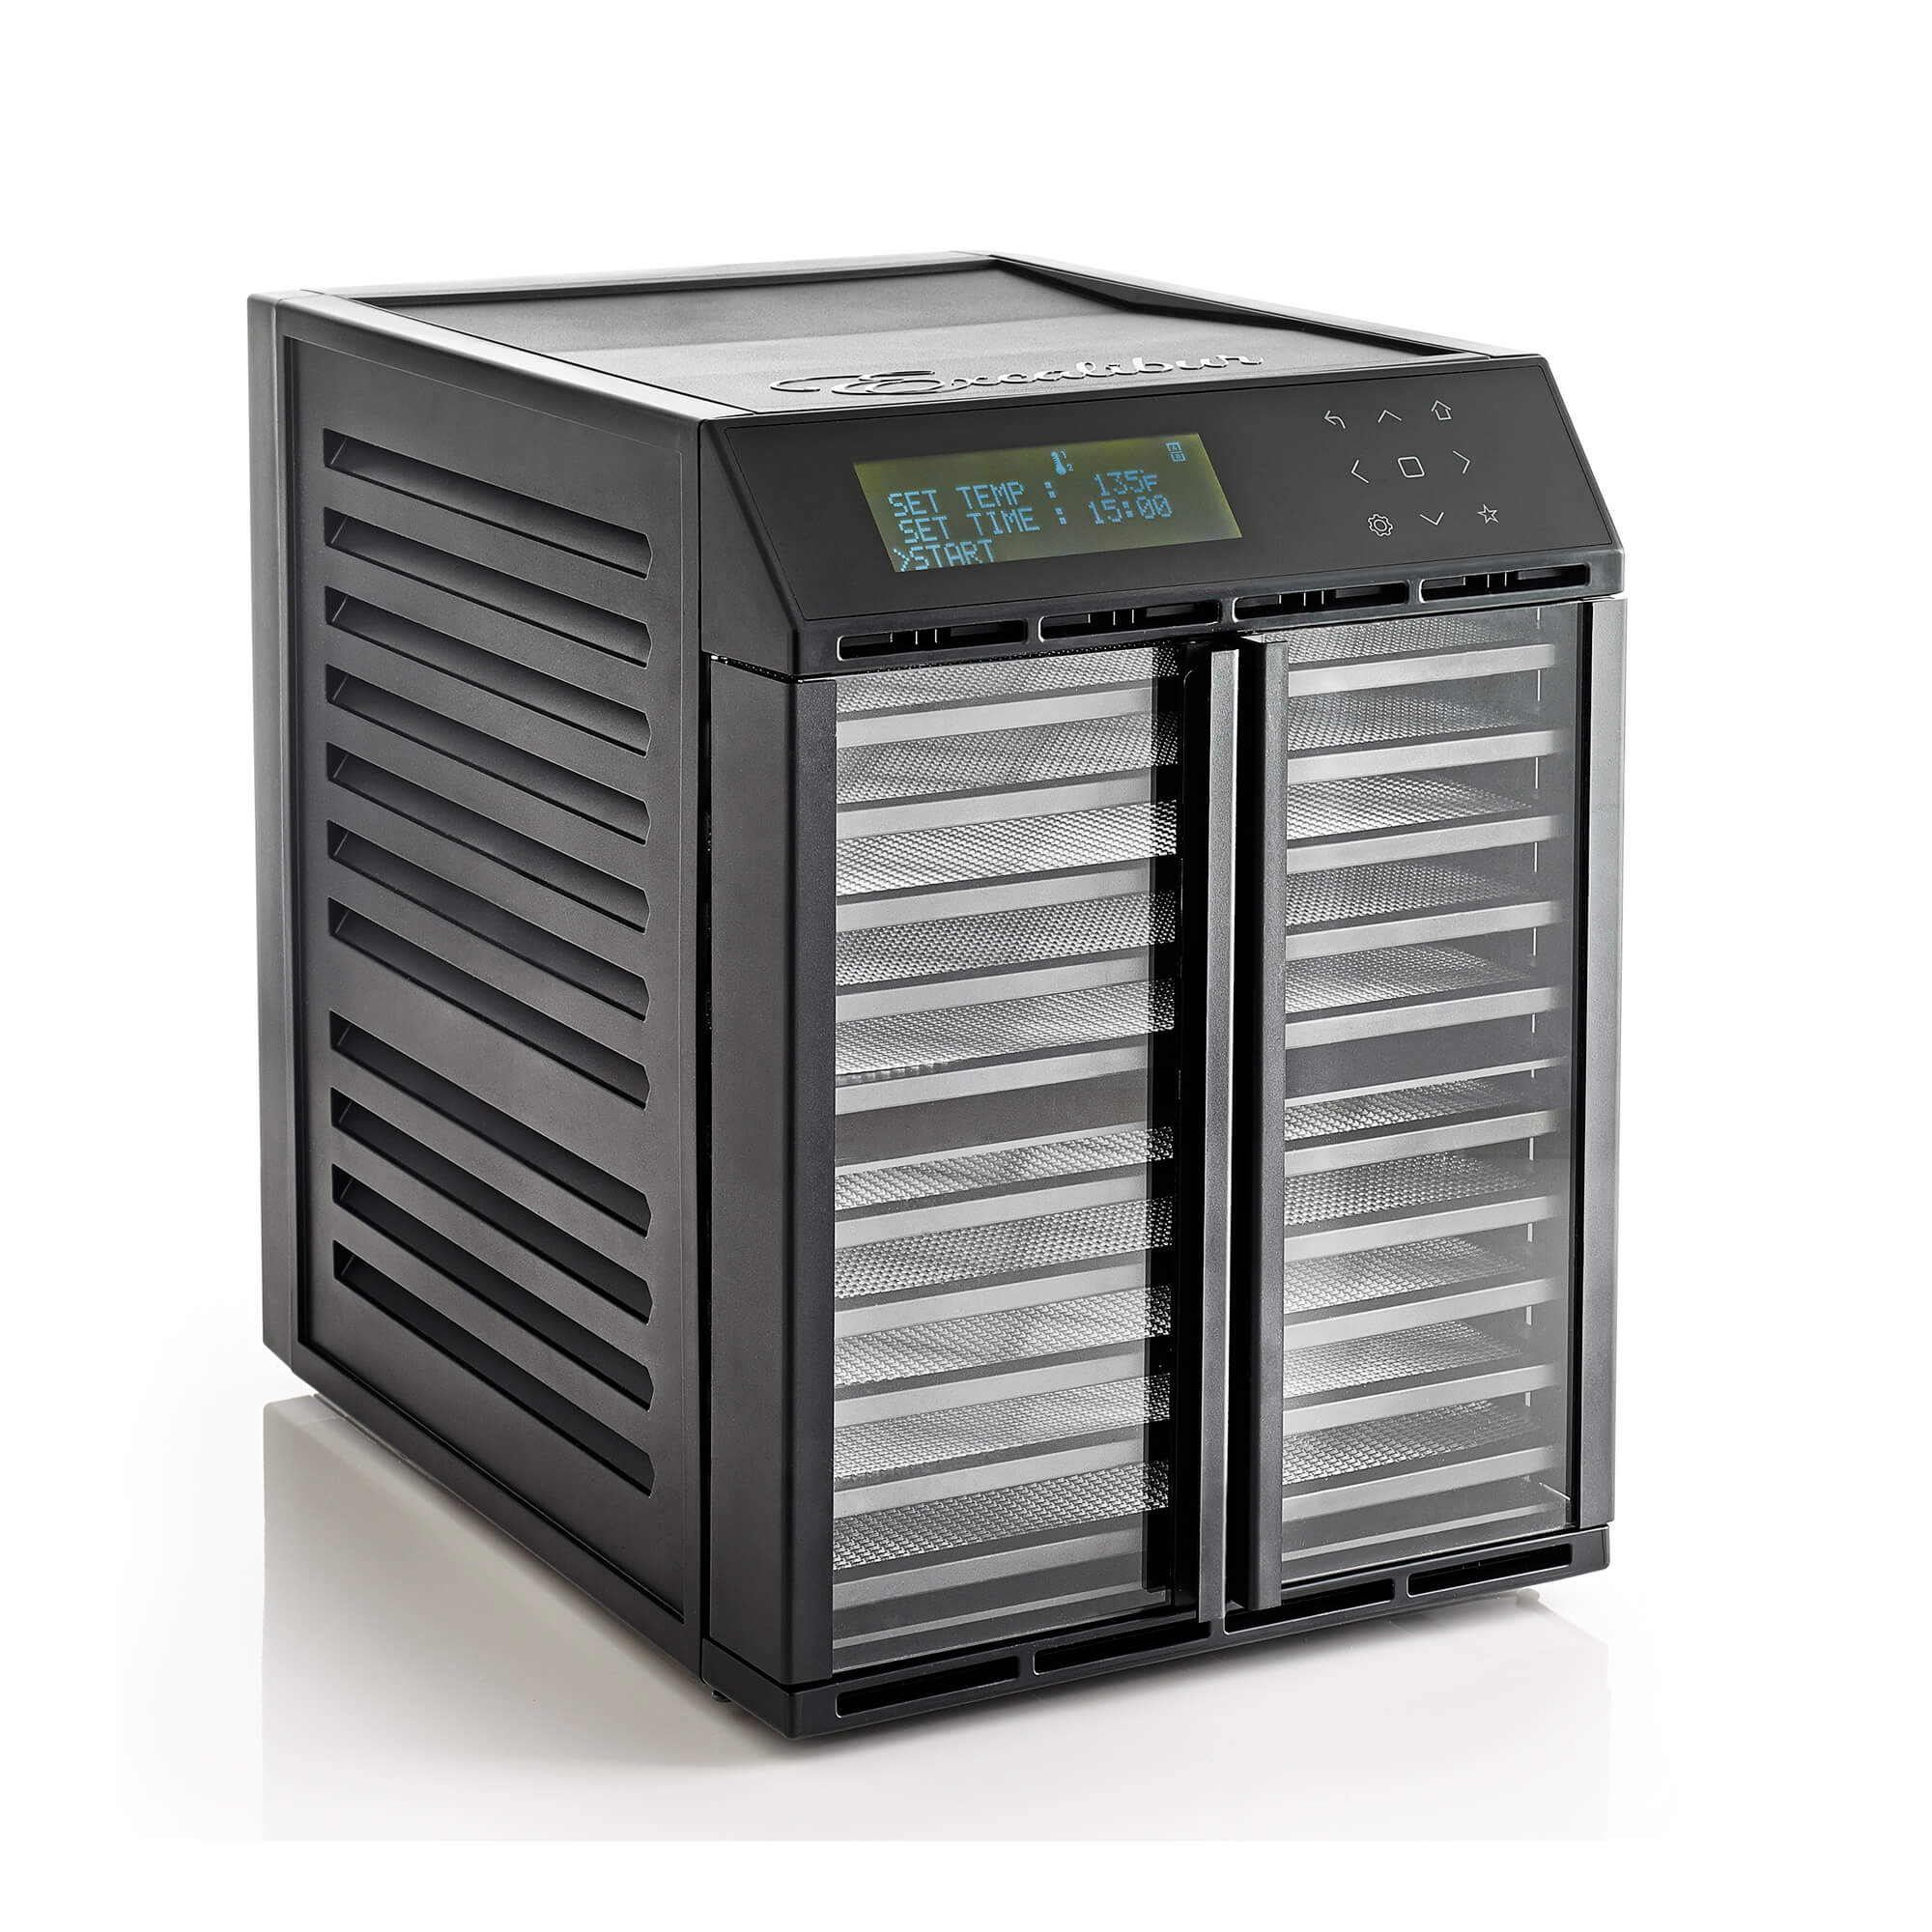 Excalibur RES10 10 tray digital dehydrator with clear doors closed.